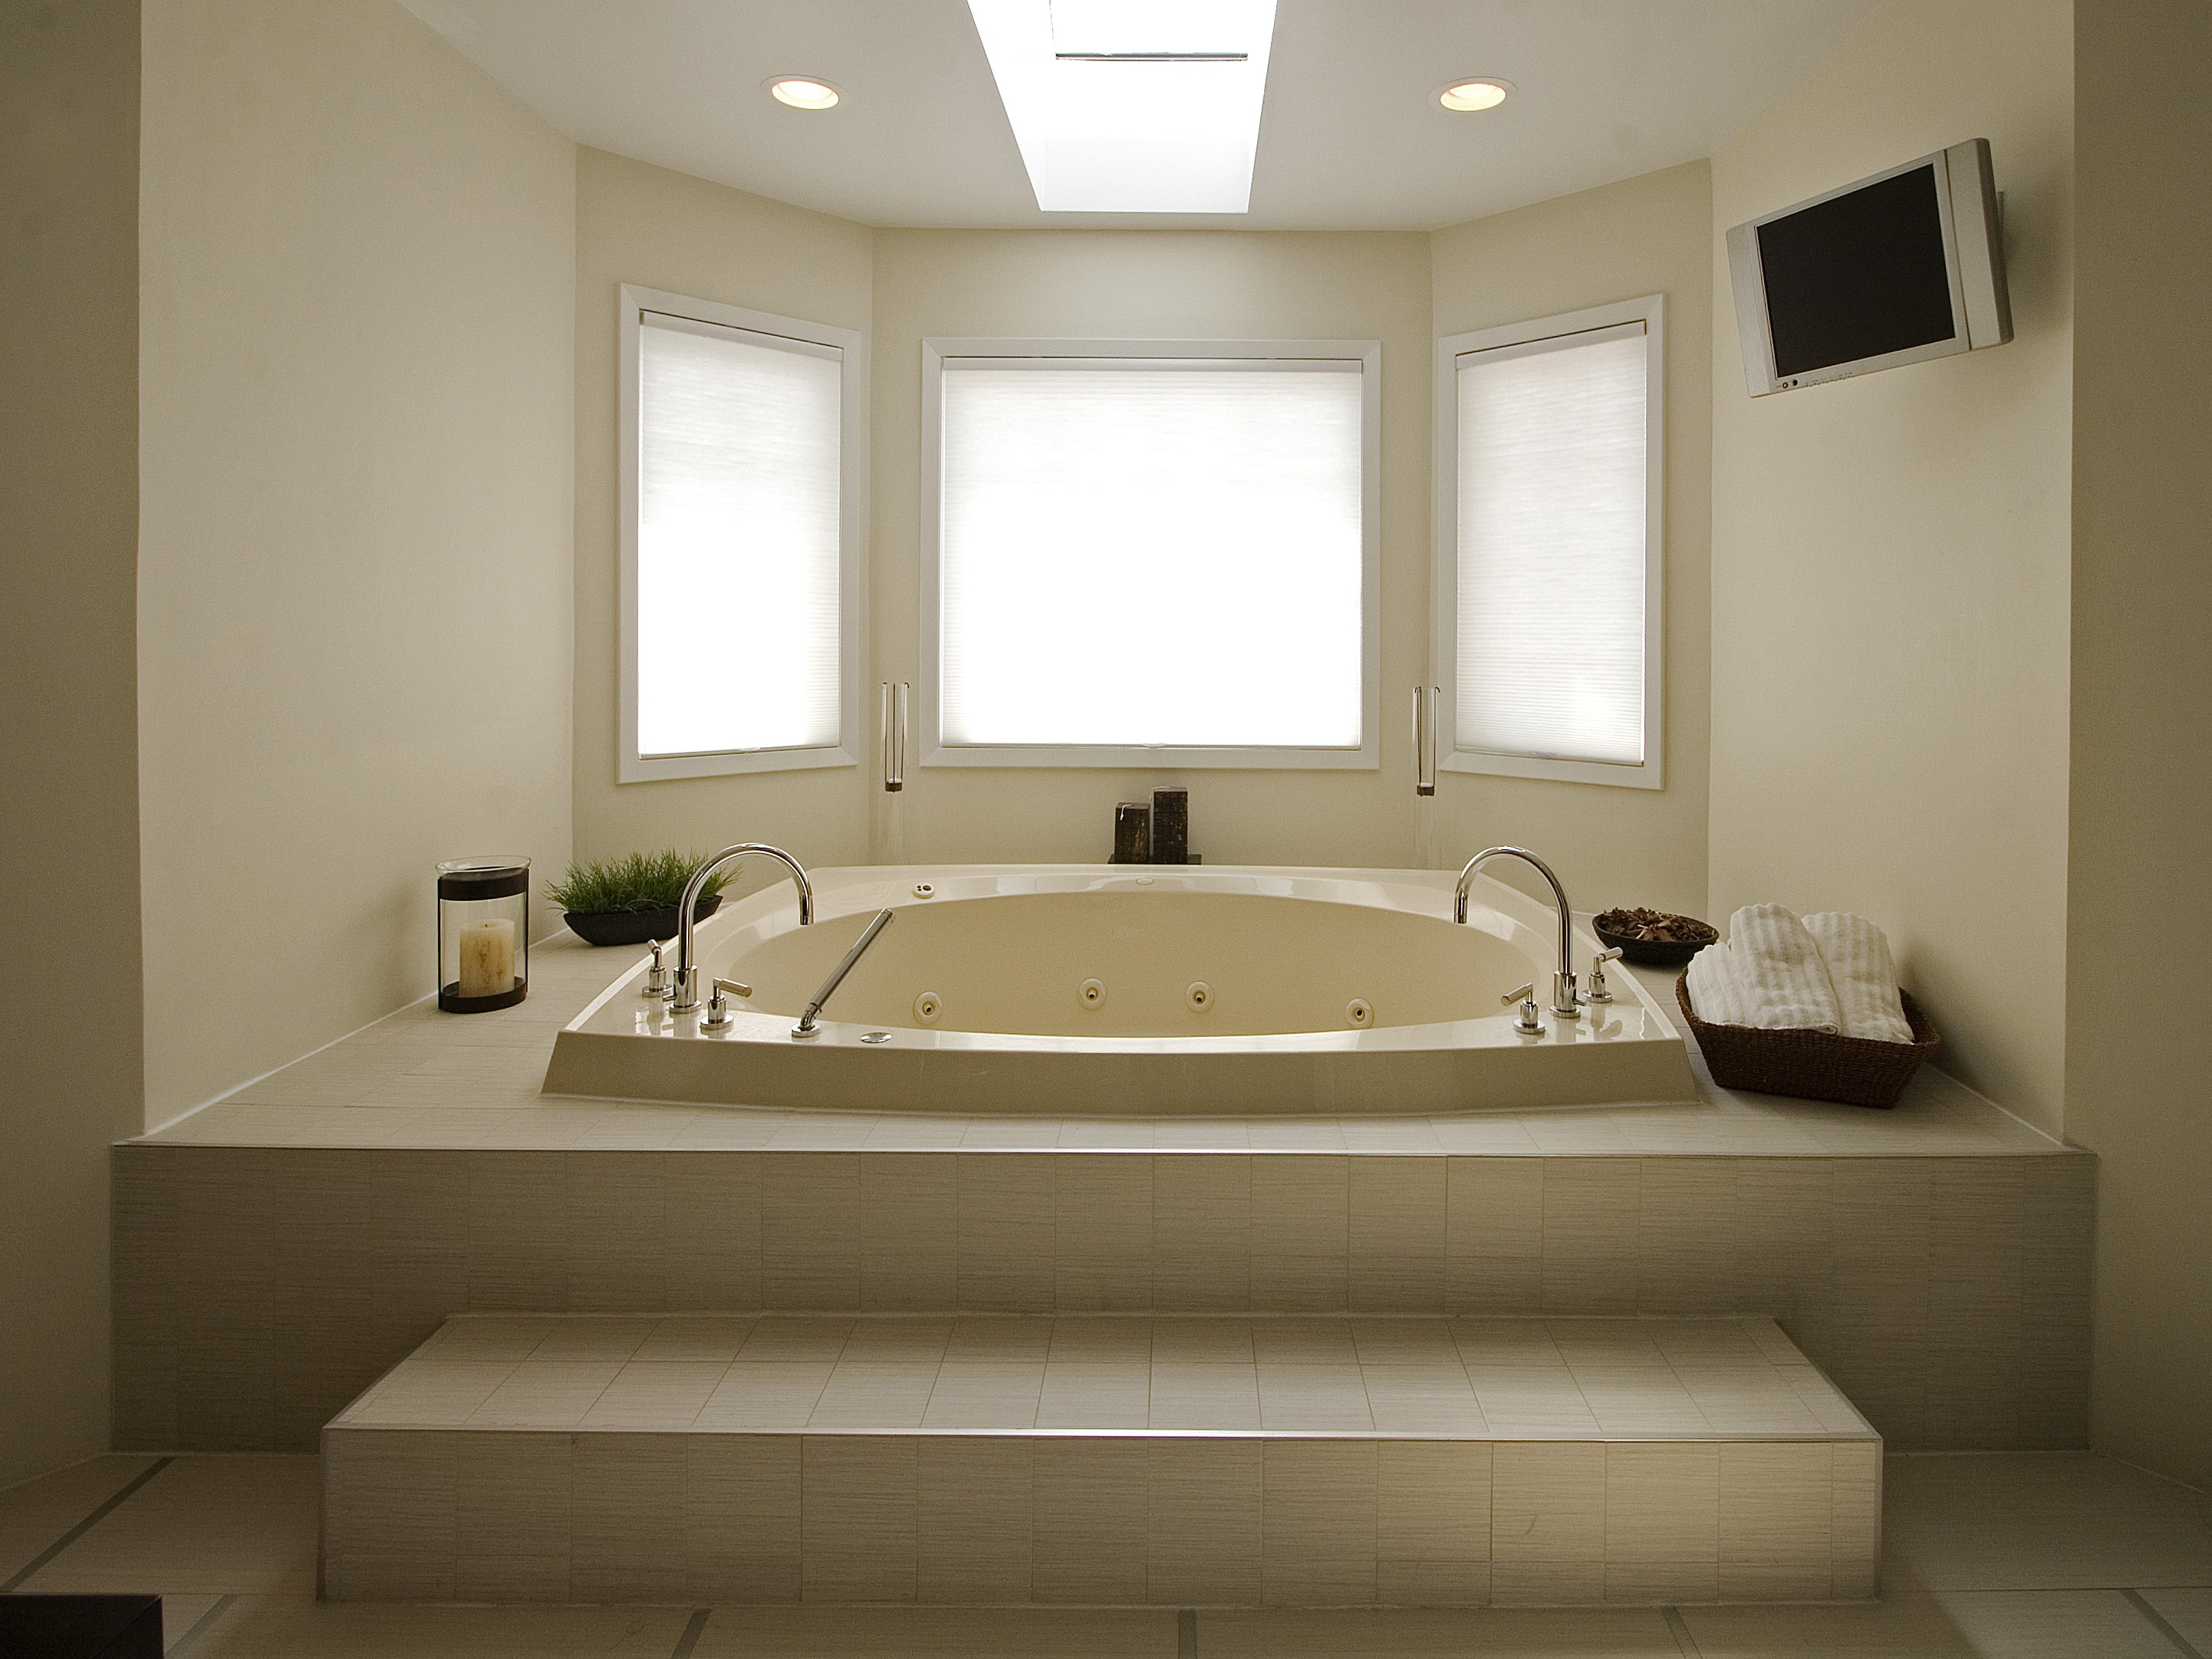 Whirlpool Bathtub In Stunning White Classic Bathroom (Image 29 of 29)